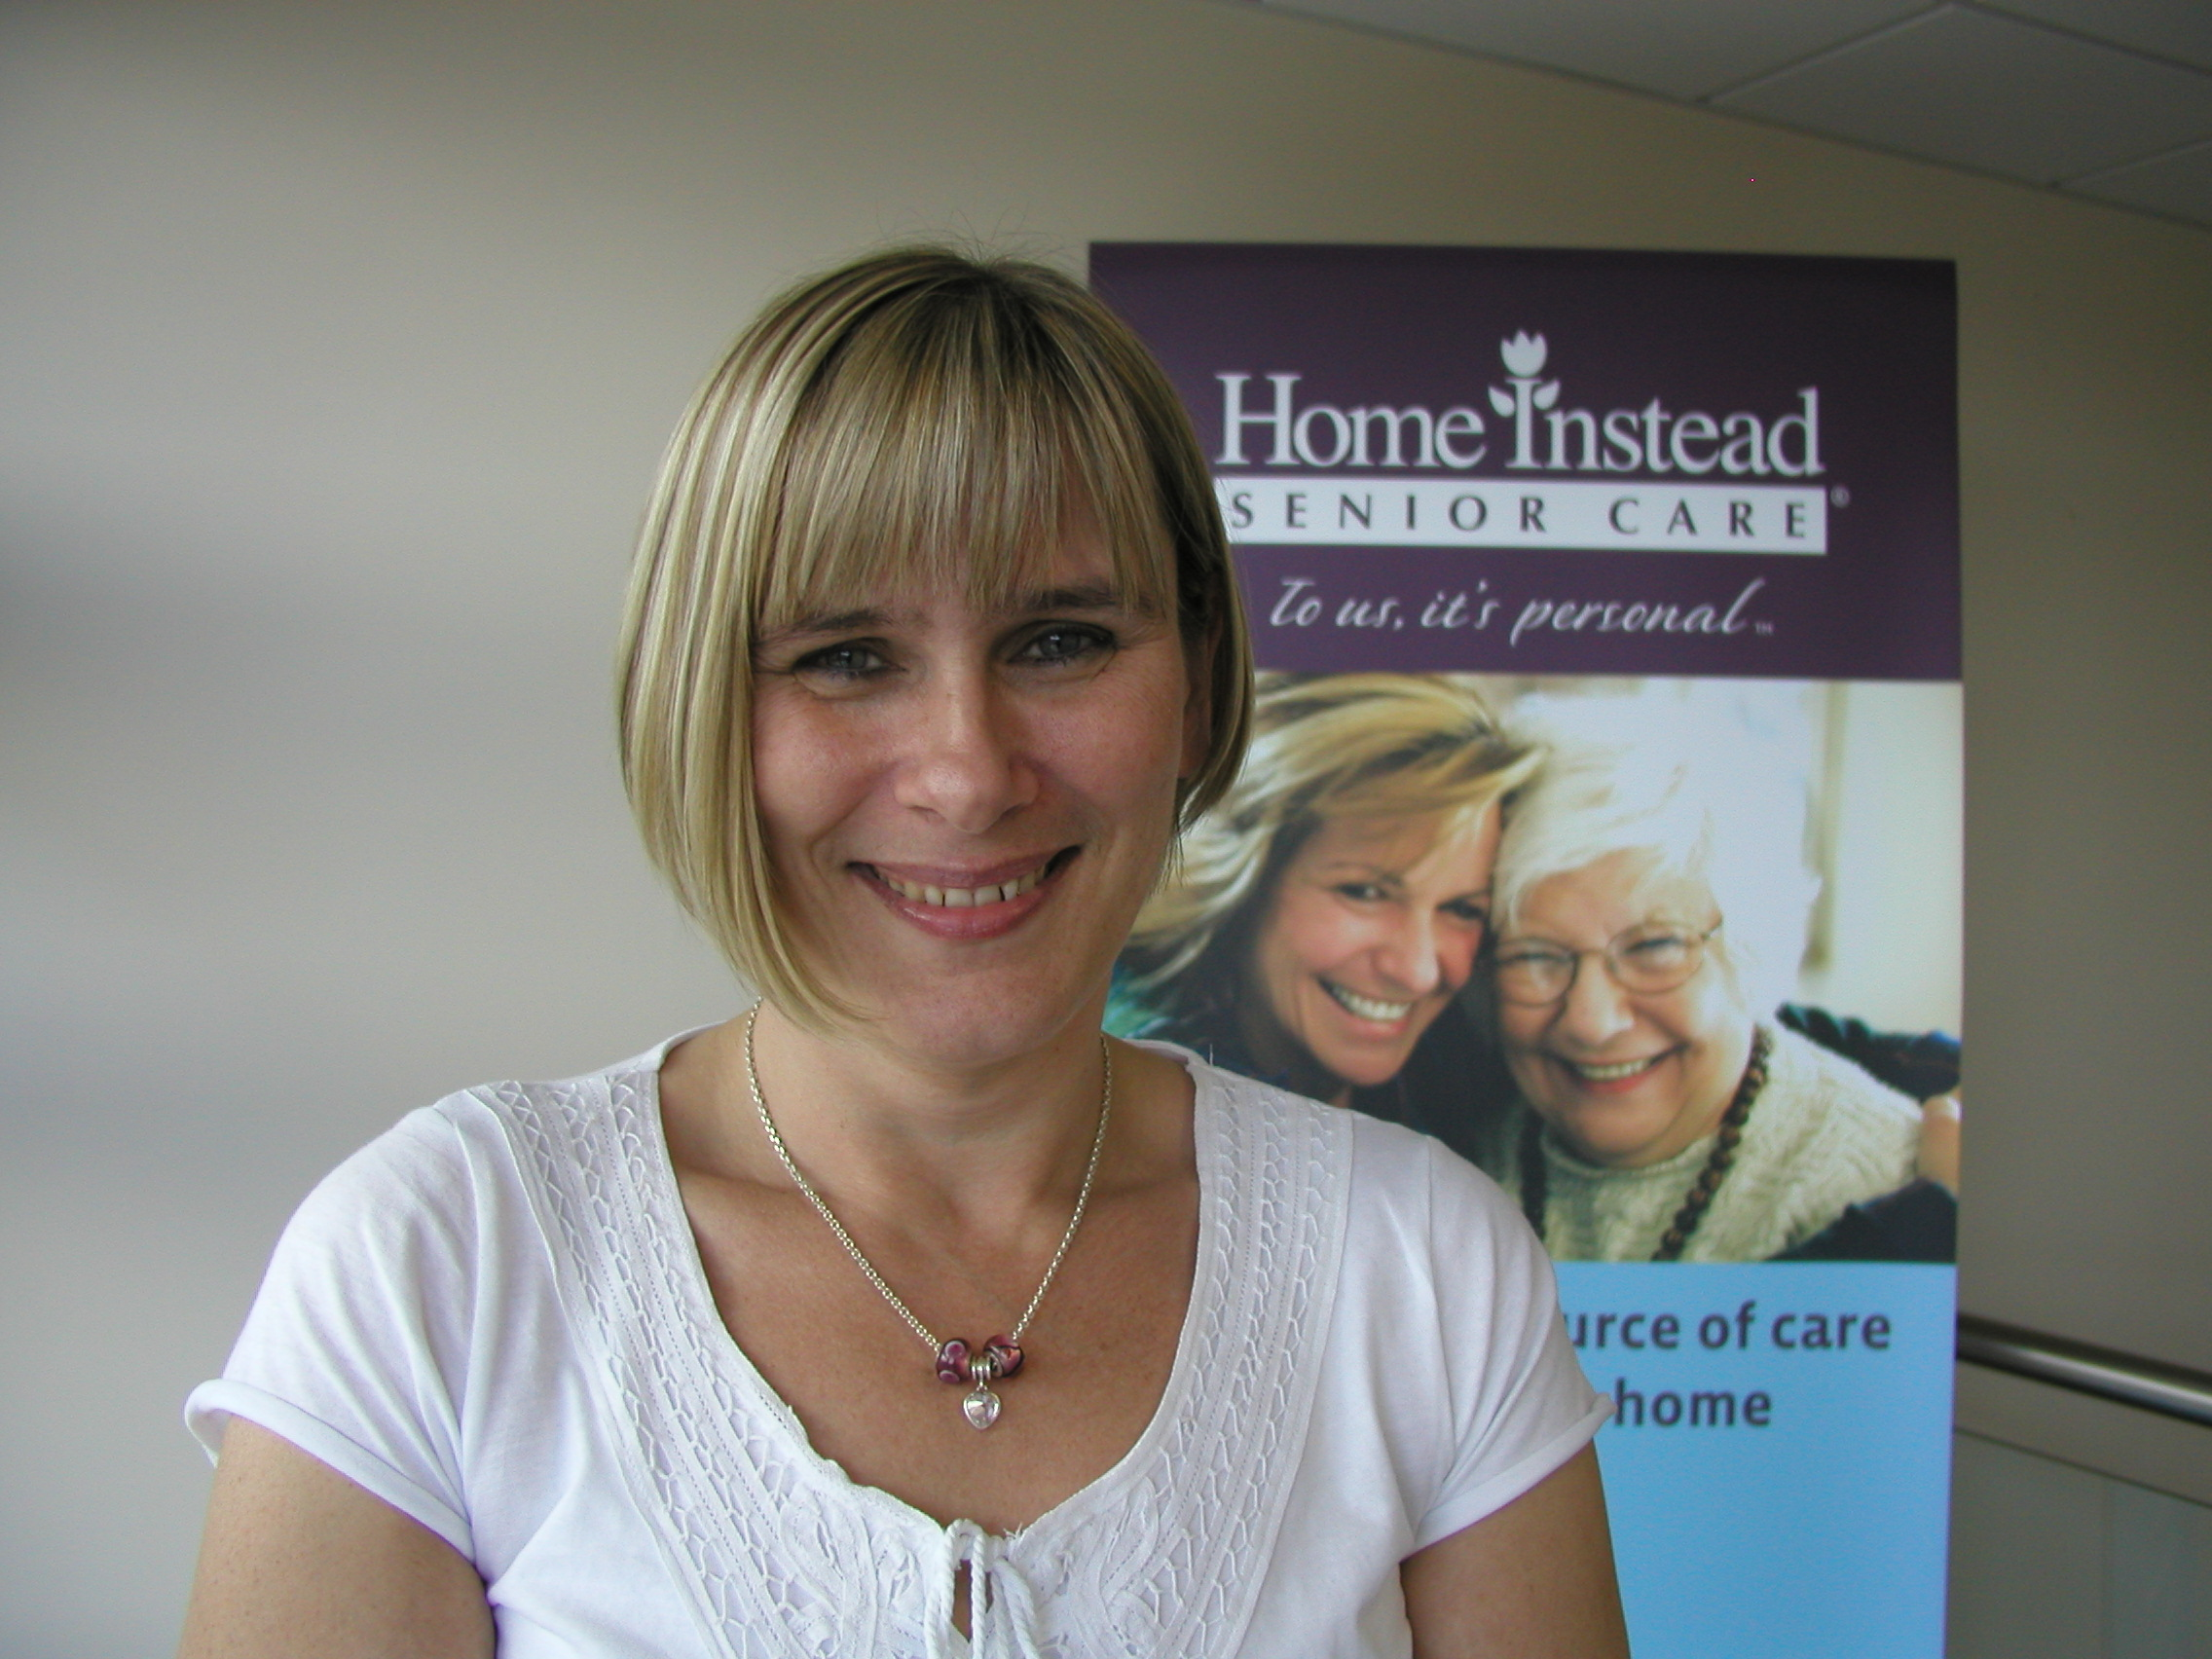 Home Instead Senior Care Harrogate, Ripon and Thirsk newly appointed Care Manager Deborah Lewin